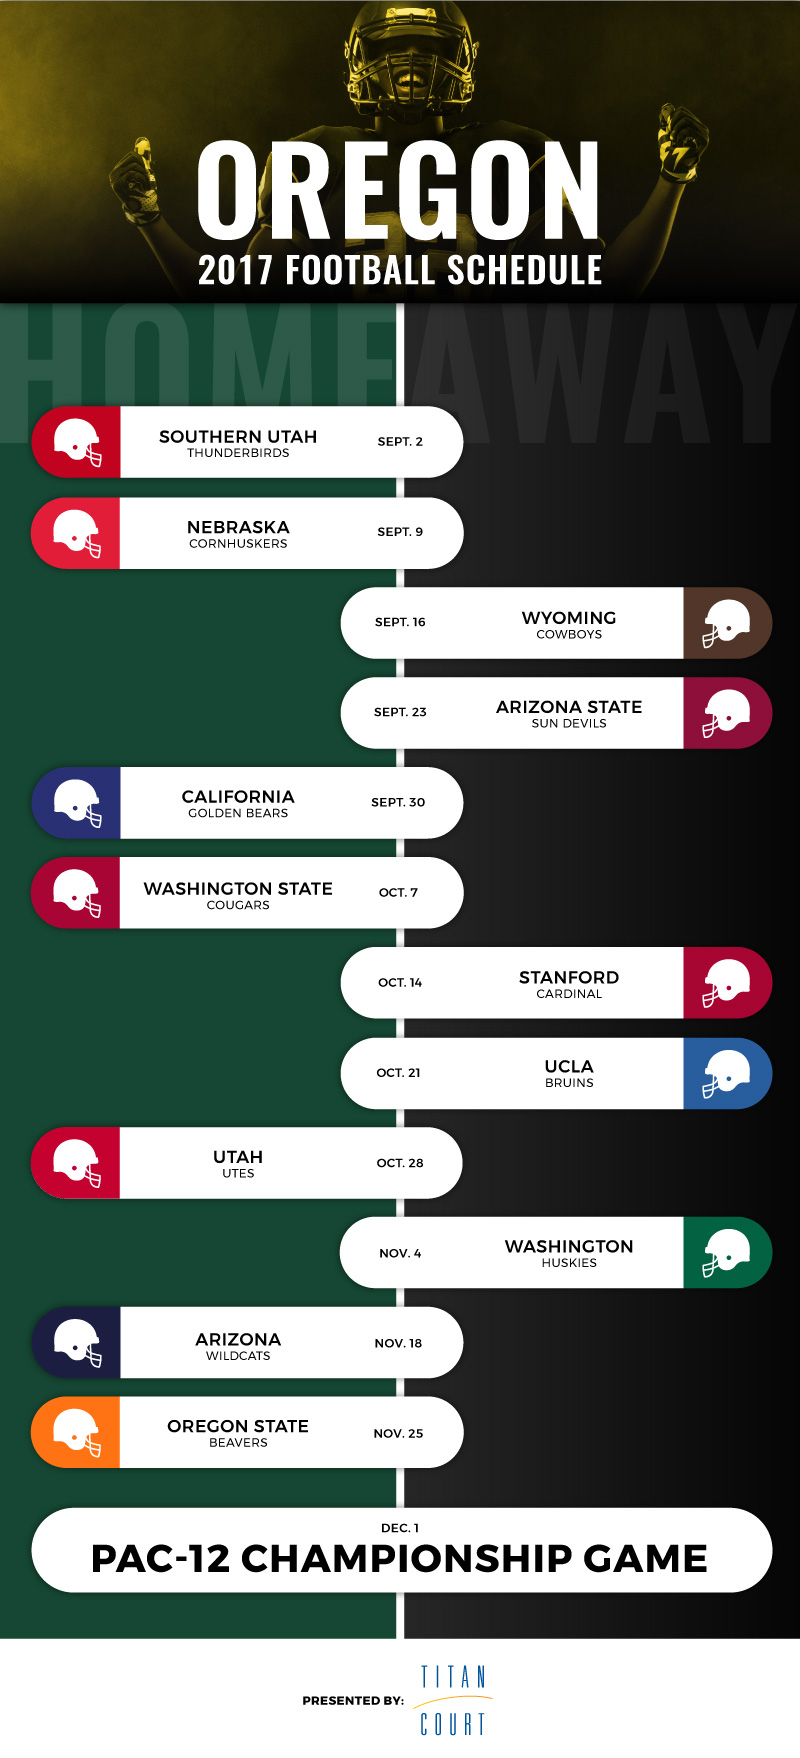 University of Oregon 2017 Football Schedule Infographic